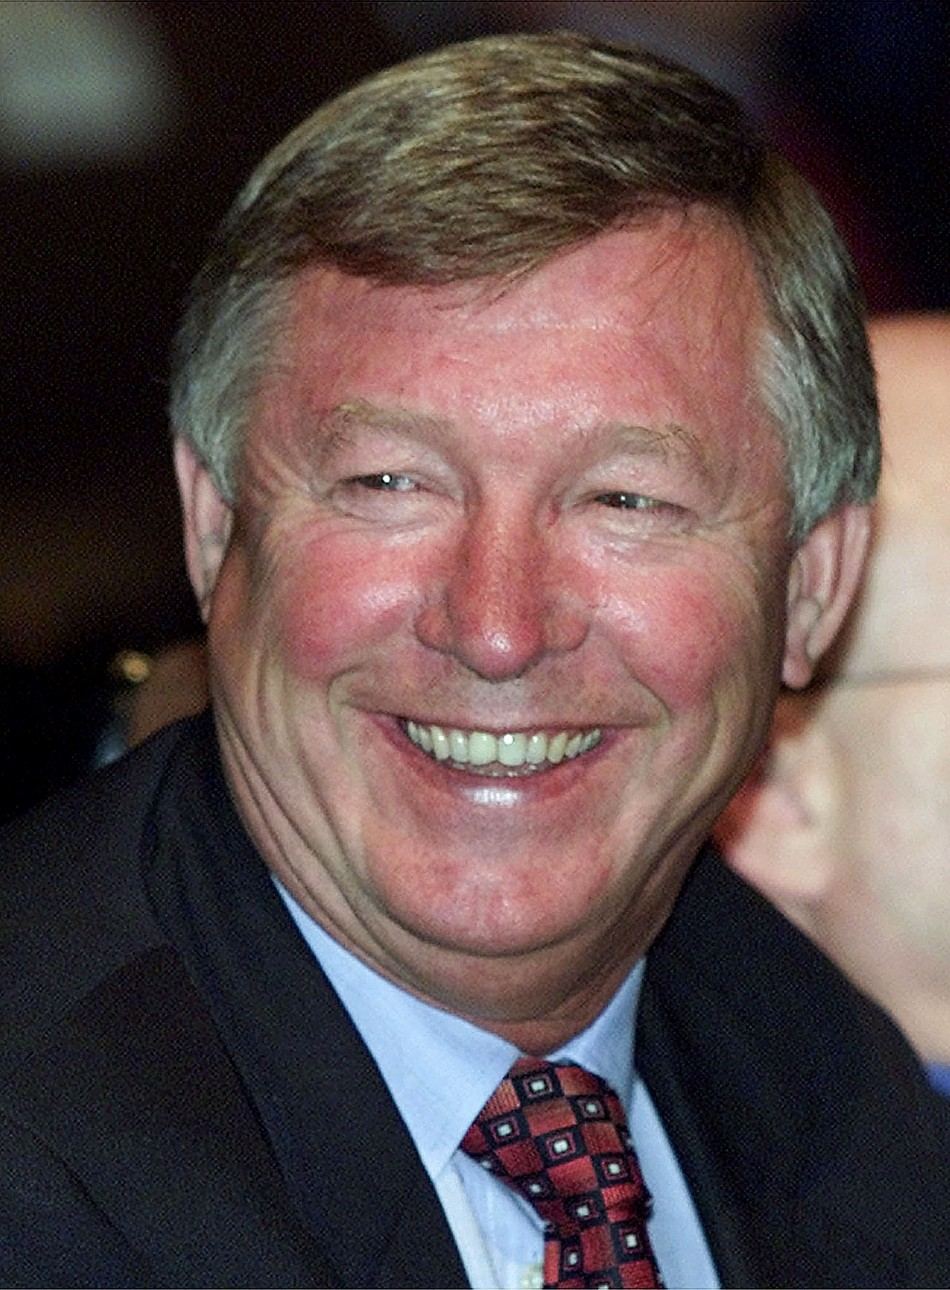 Manchester Uniteds coach and manager Sir Alex Fergusson